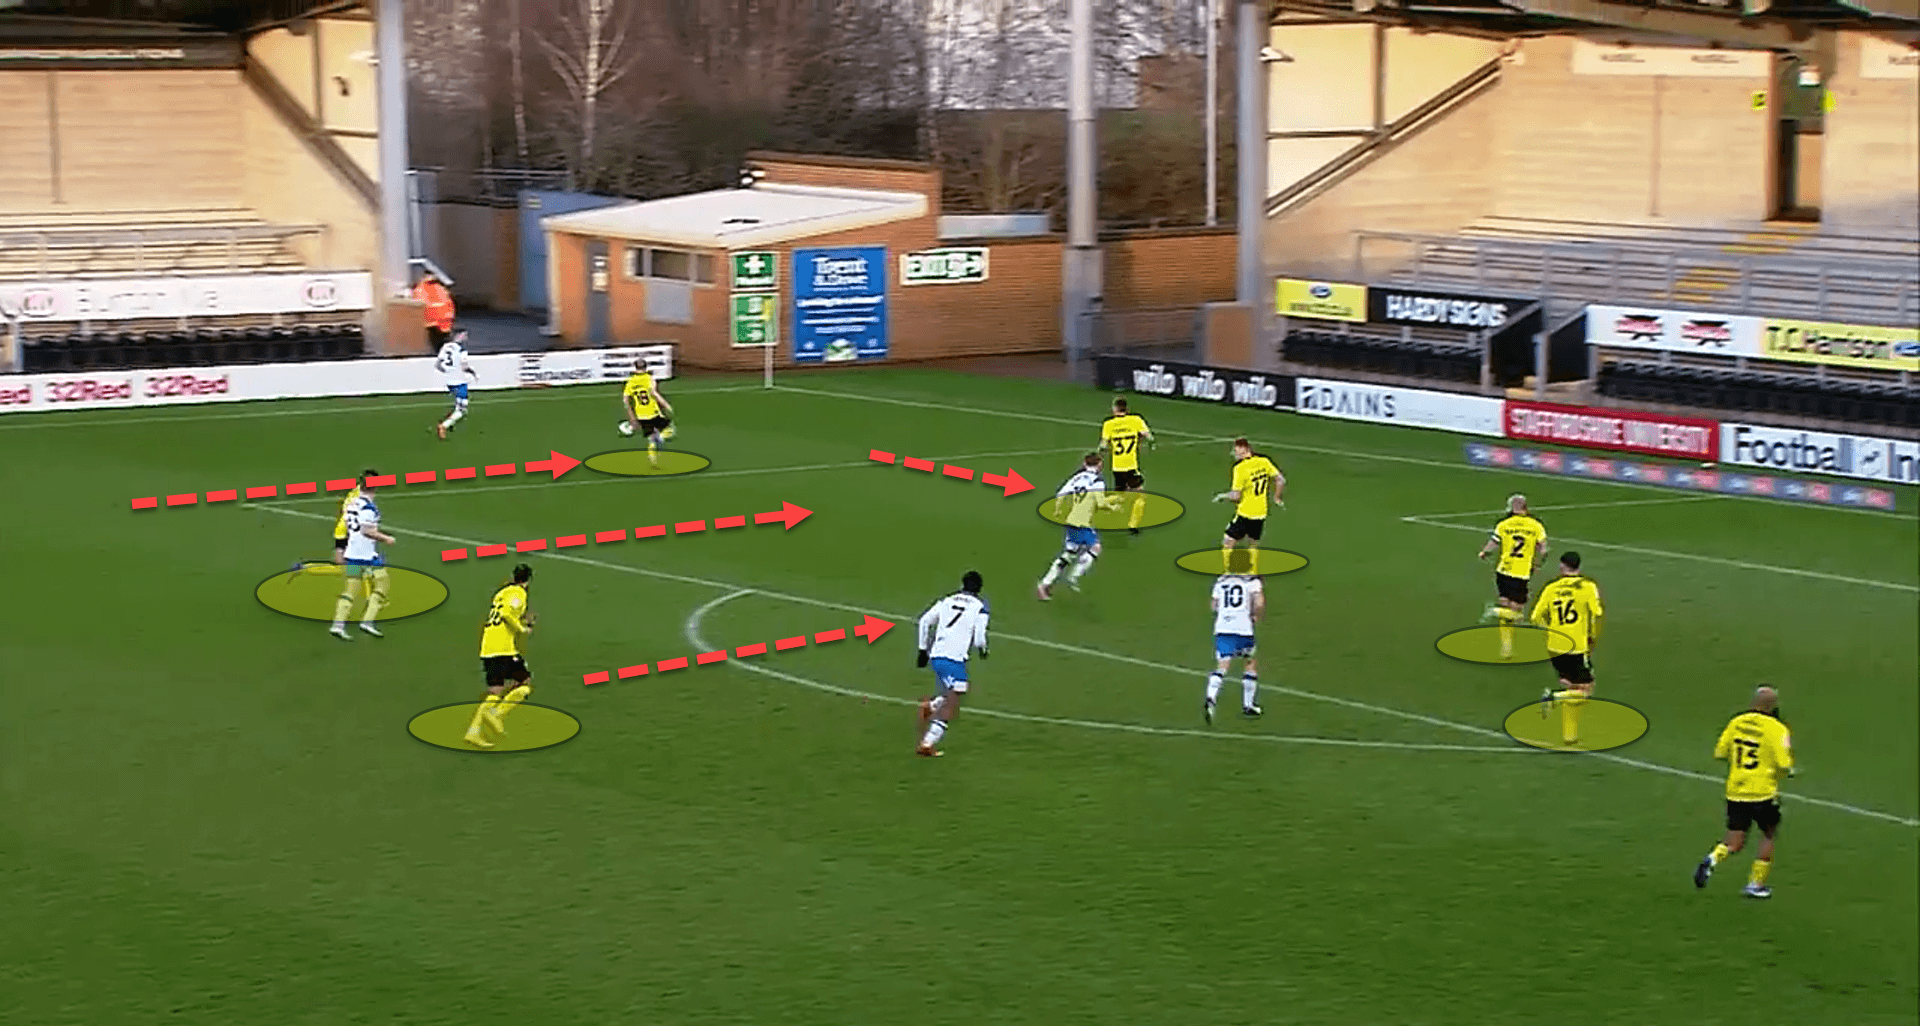 How Burton Albion are one of the most in-form teams in English football after their managerial change